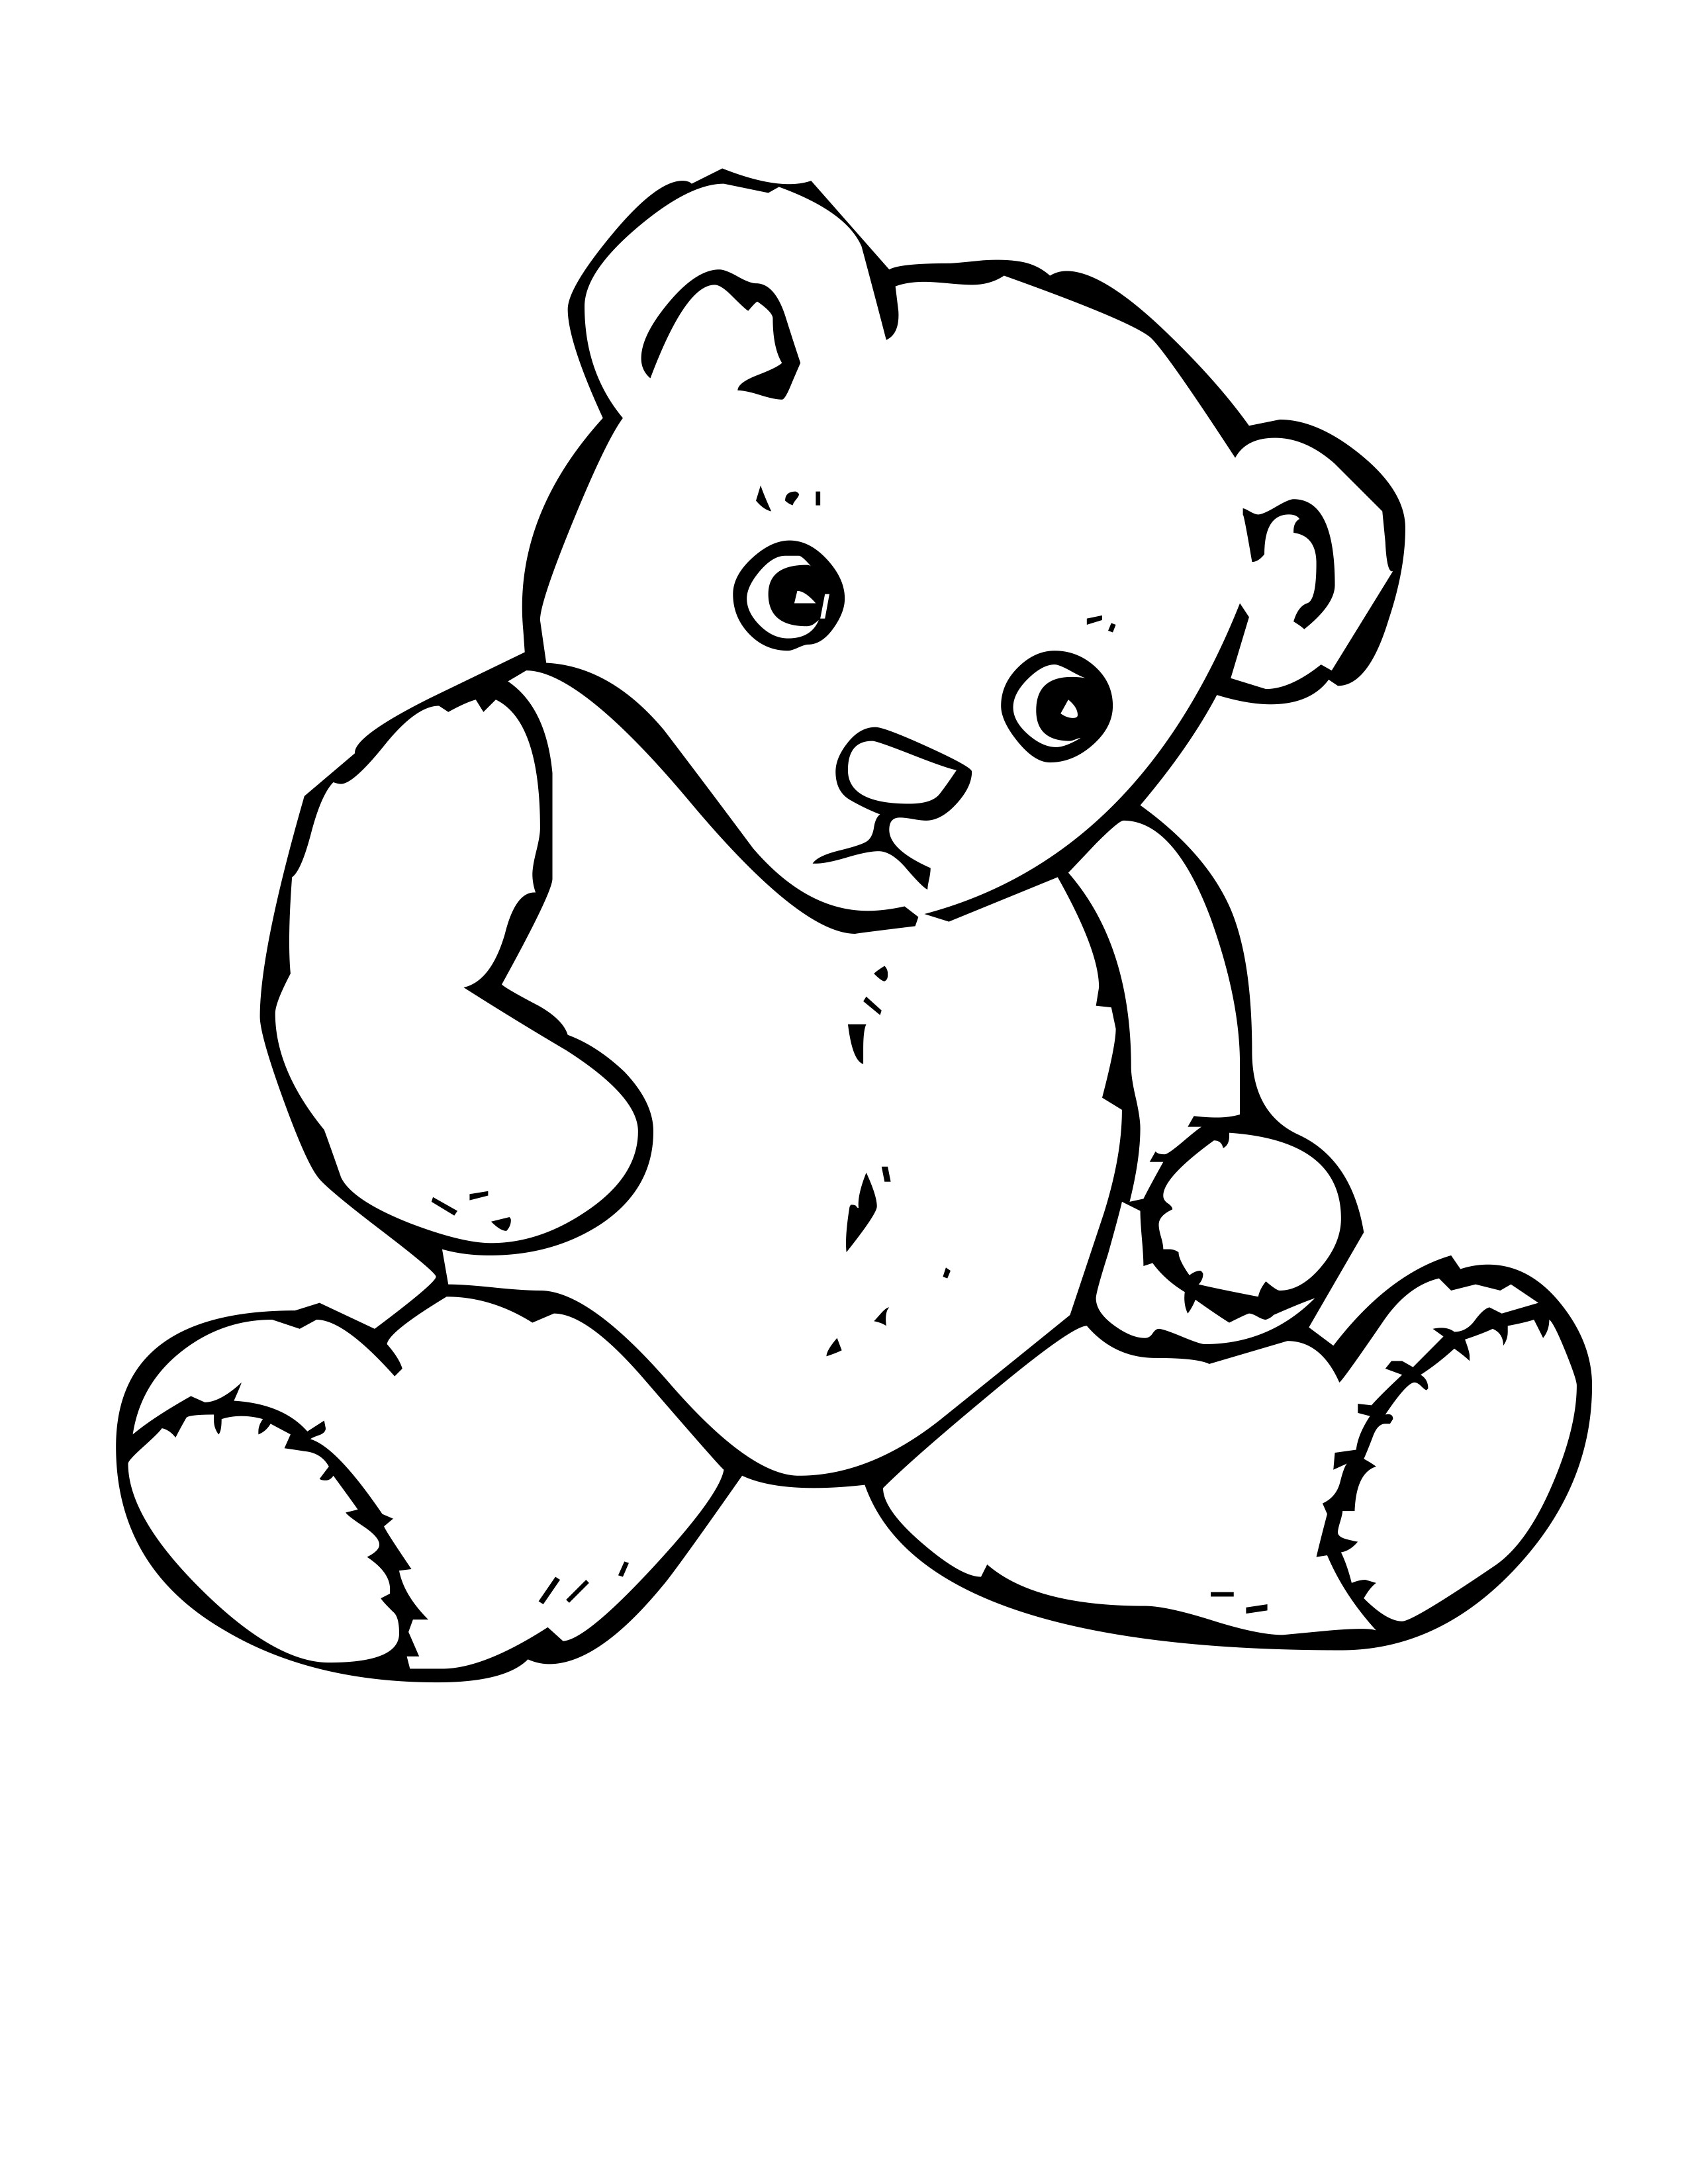 coloring picture of a bear teddy bears free colouring pages a picture of bear coloring